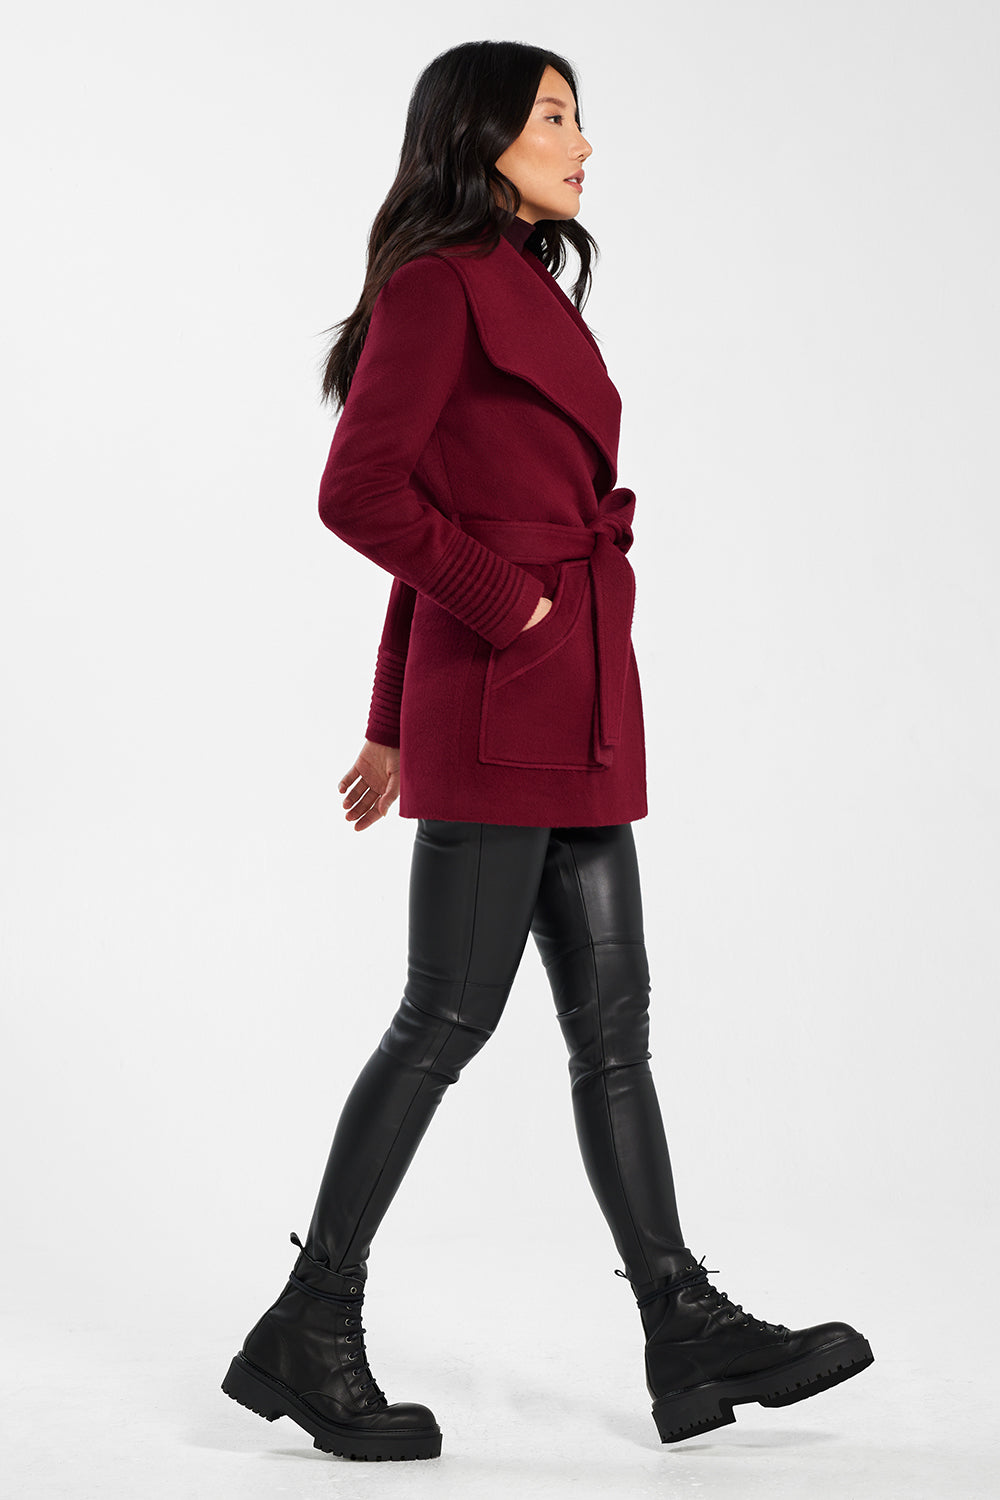 Sentaler Cropped Wide Collar Wrap Coat featured in Baby Alpaca and available in Garnet Red. Seen from side.